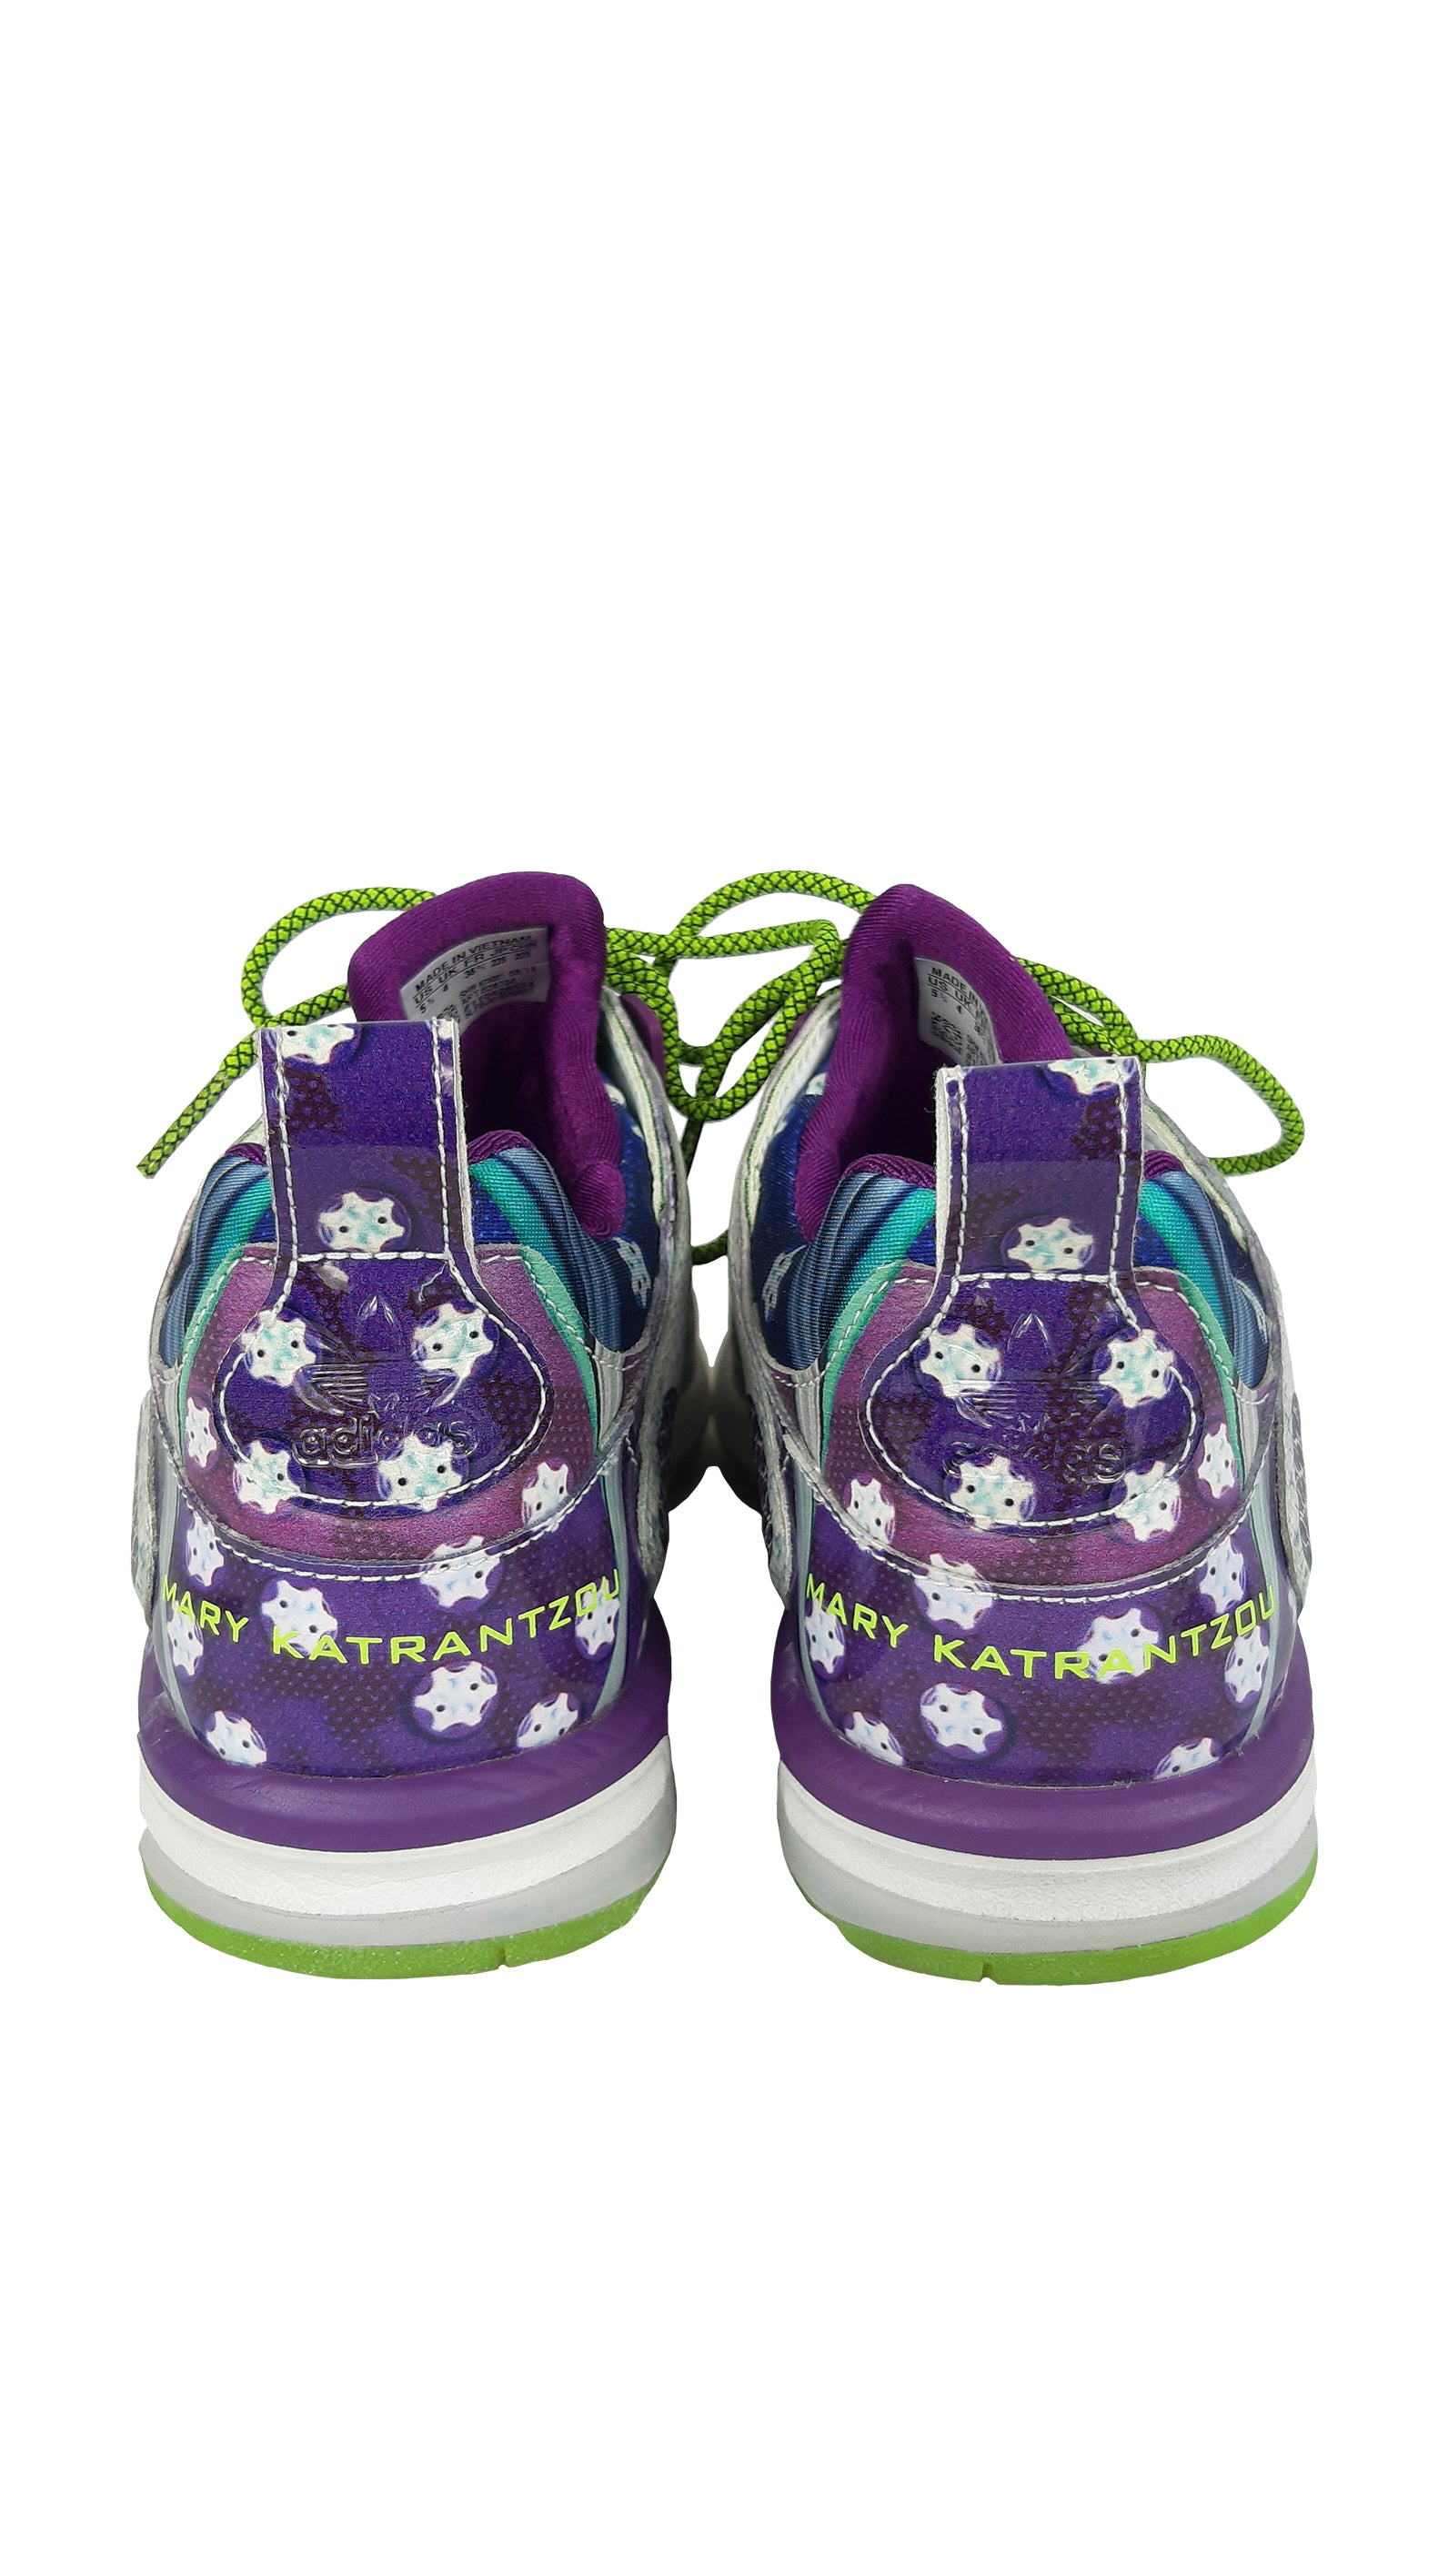 Mary Katrantzou for Adidas Printed Sneakers Size 36,5 (EU)